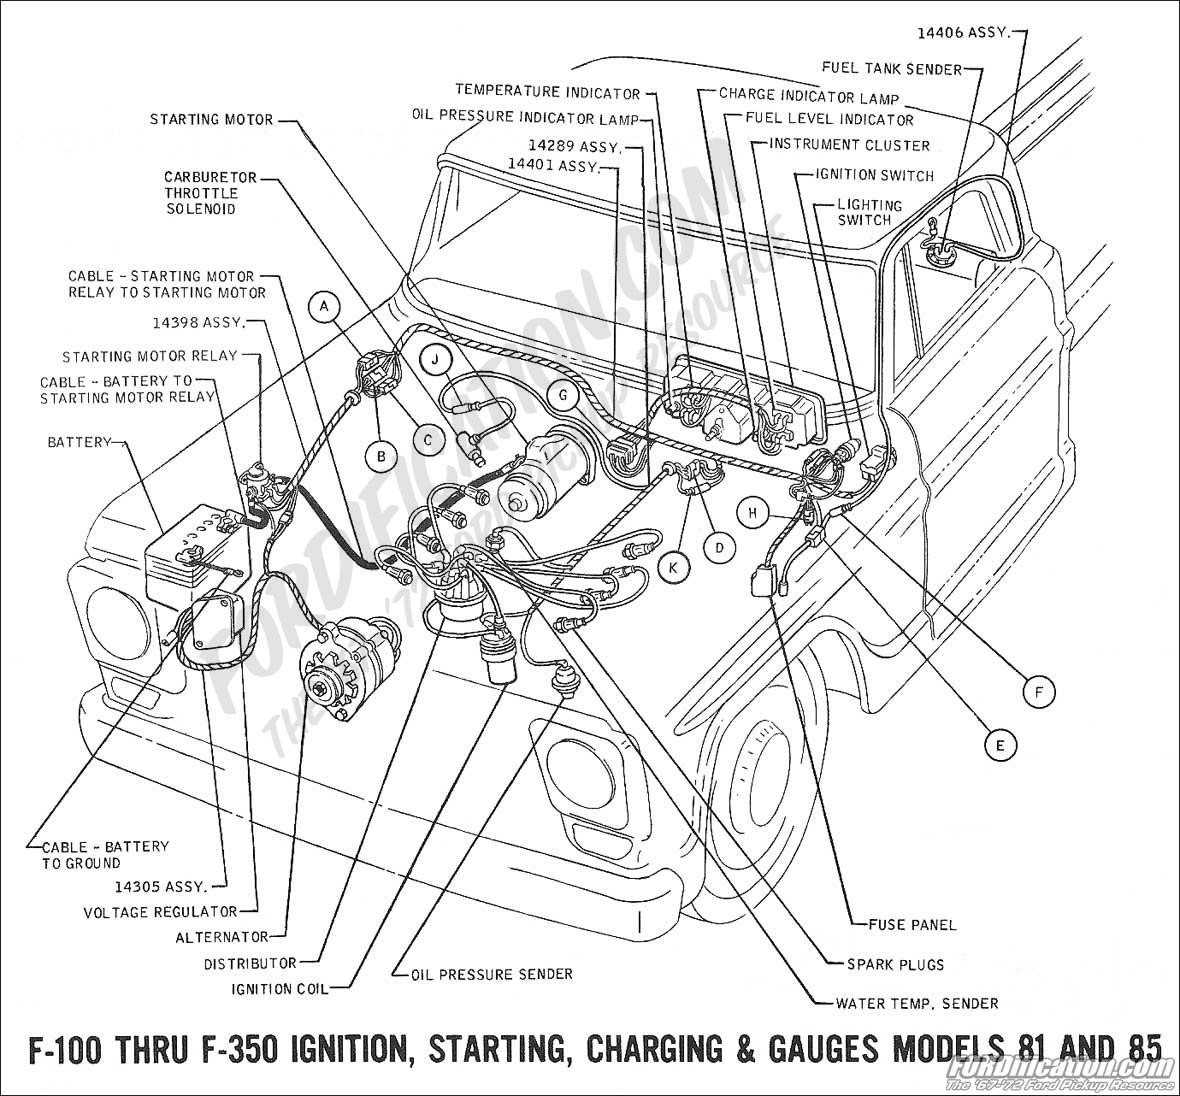 wiring 1969charging ford truck technical drawings and schematics section h wiring 1965 ford truck wiring diagram at nearapp.co